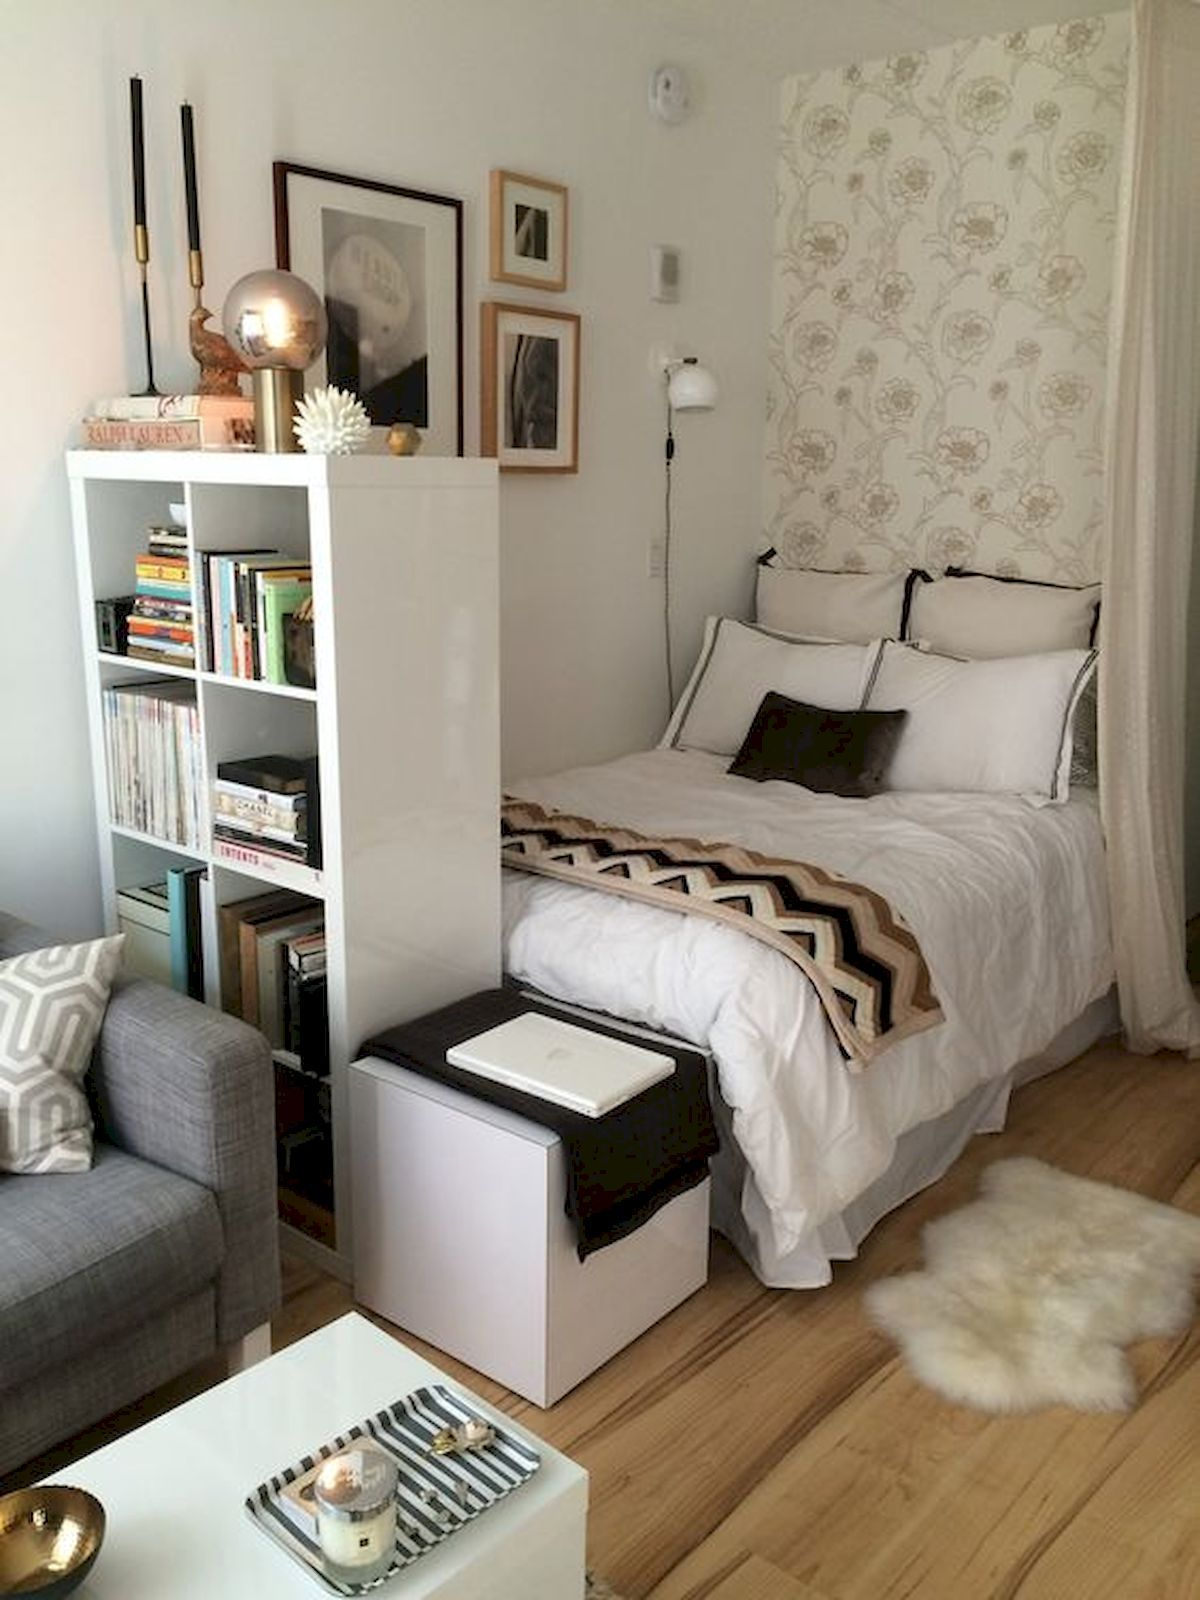 Gorgeous fantastic college bedroom decor ideas and remodel source https worldecor also rh pinterest